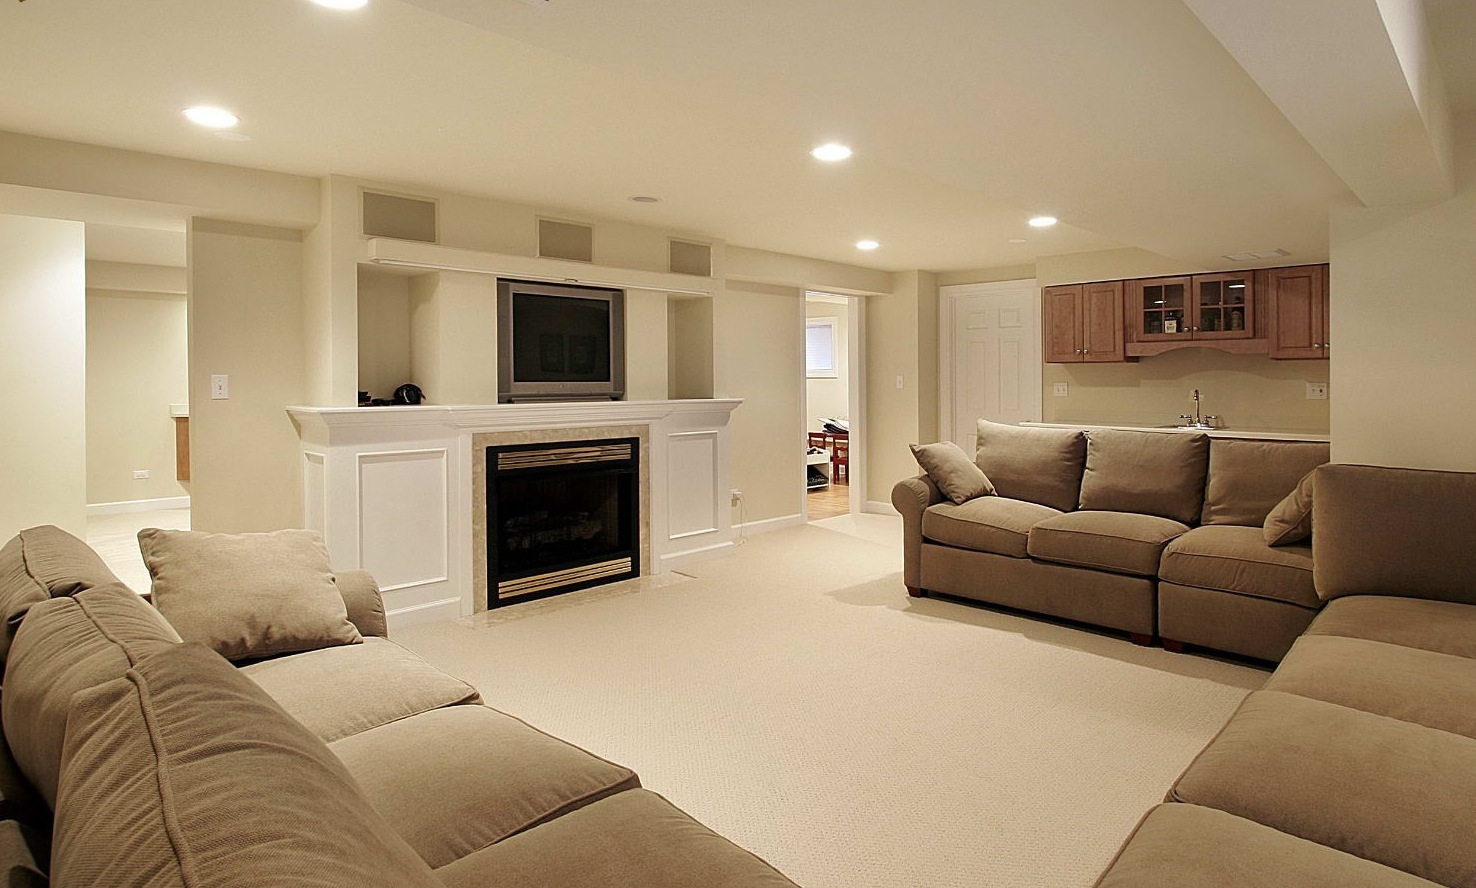 Basement Renovations Ideas 30 basement remodeling ideas & inspiration